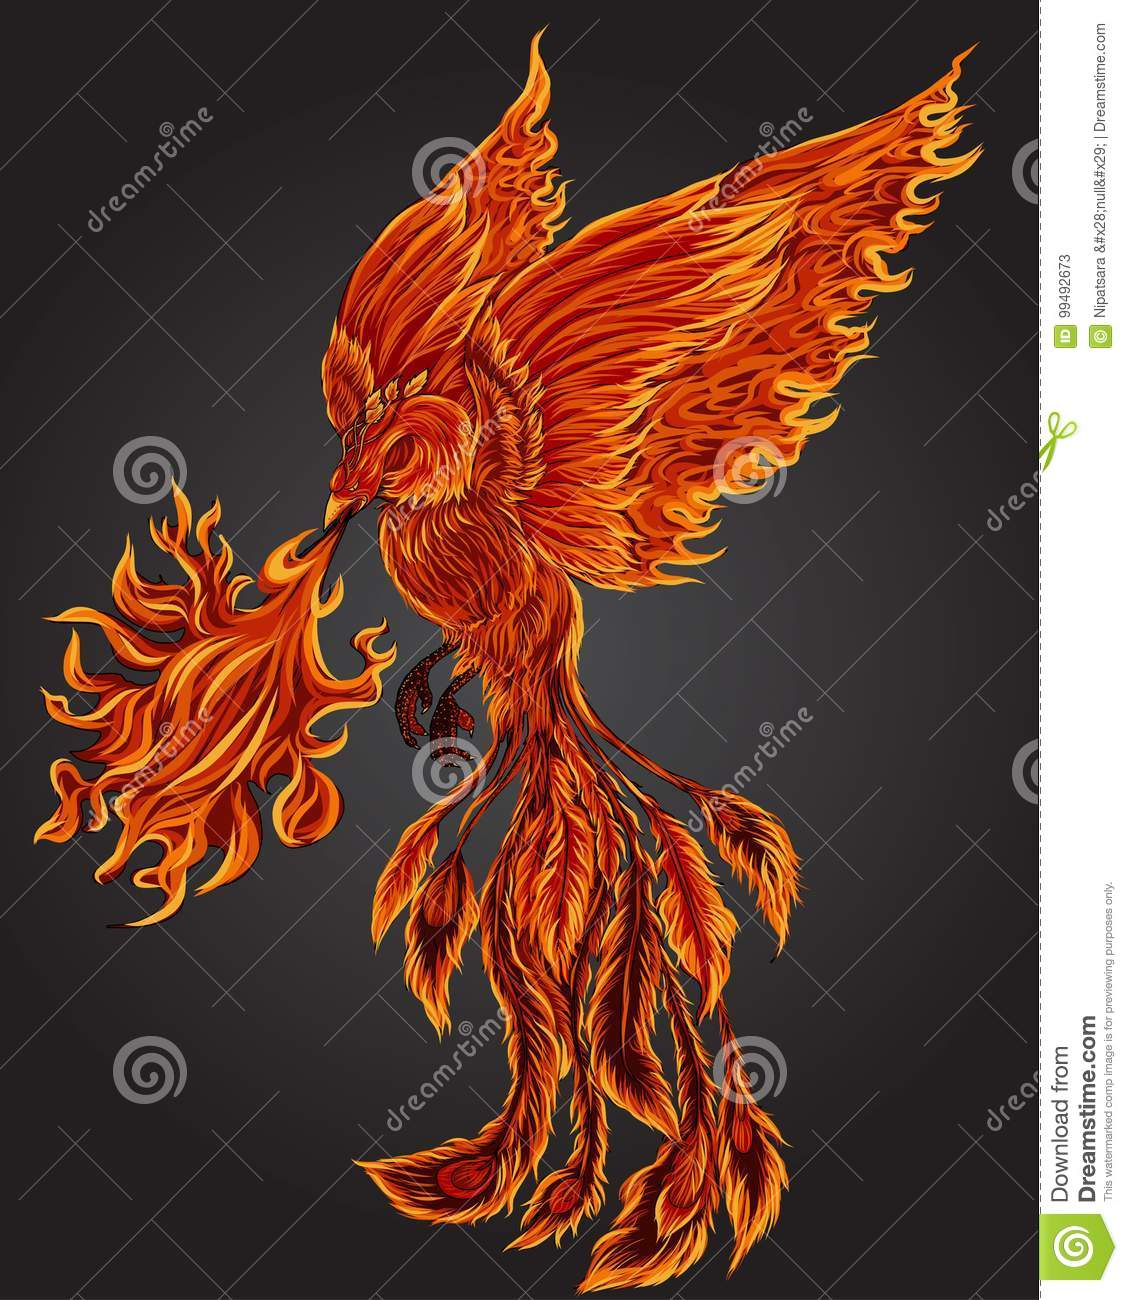 Phoenix Fire Bird Illustration And Character Designhand Drawn